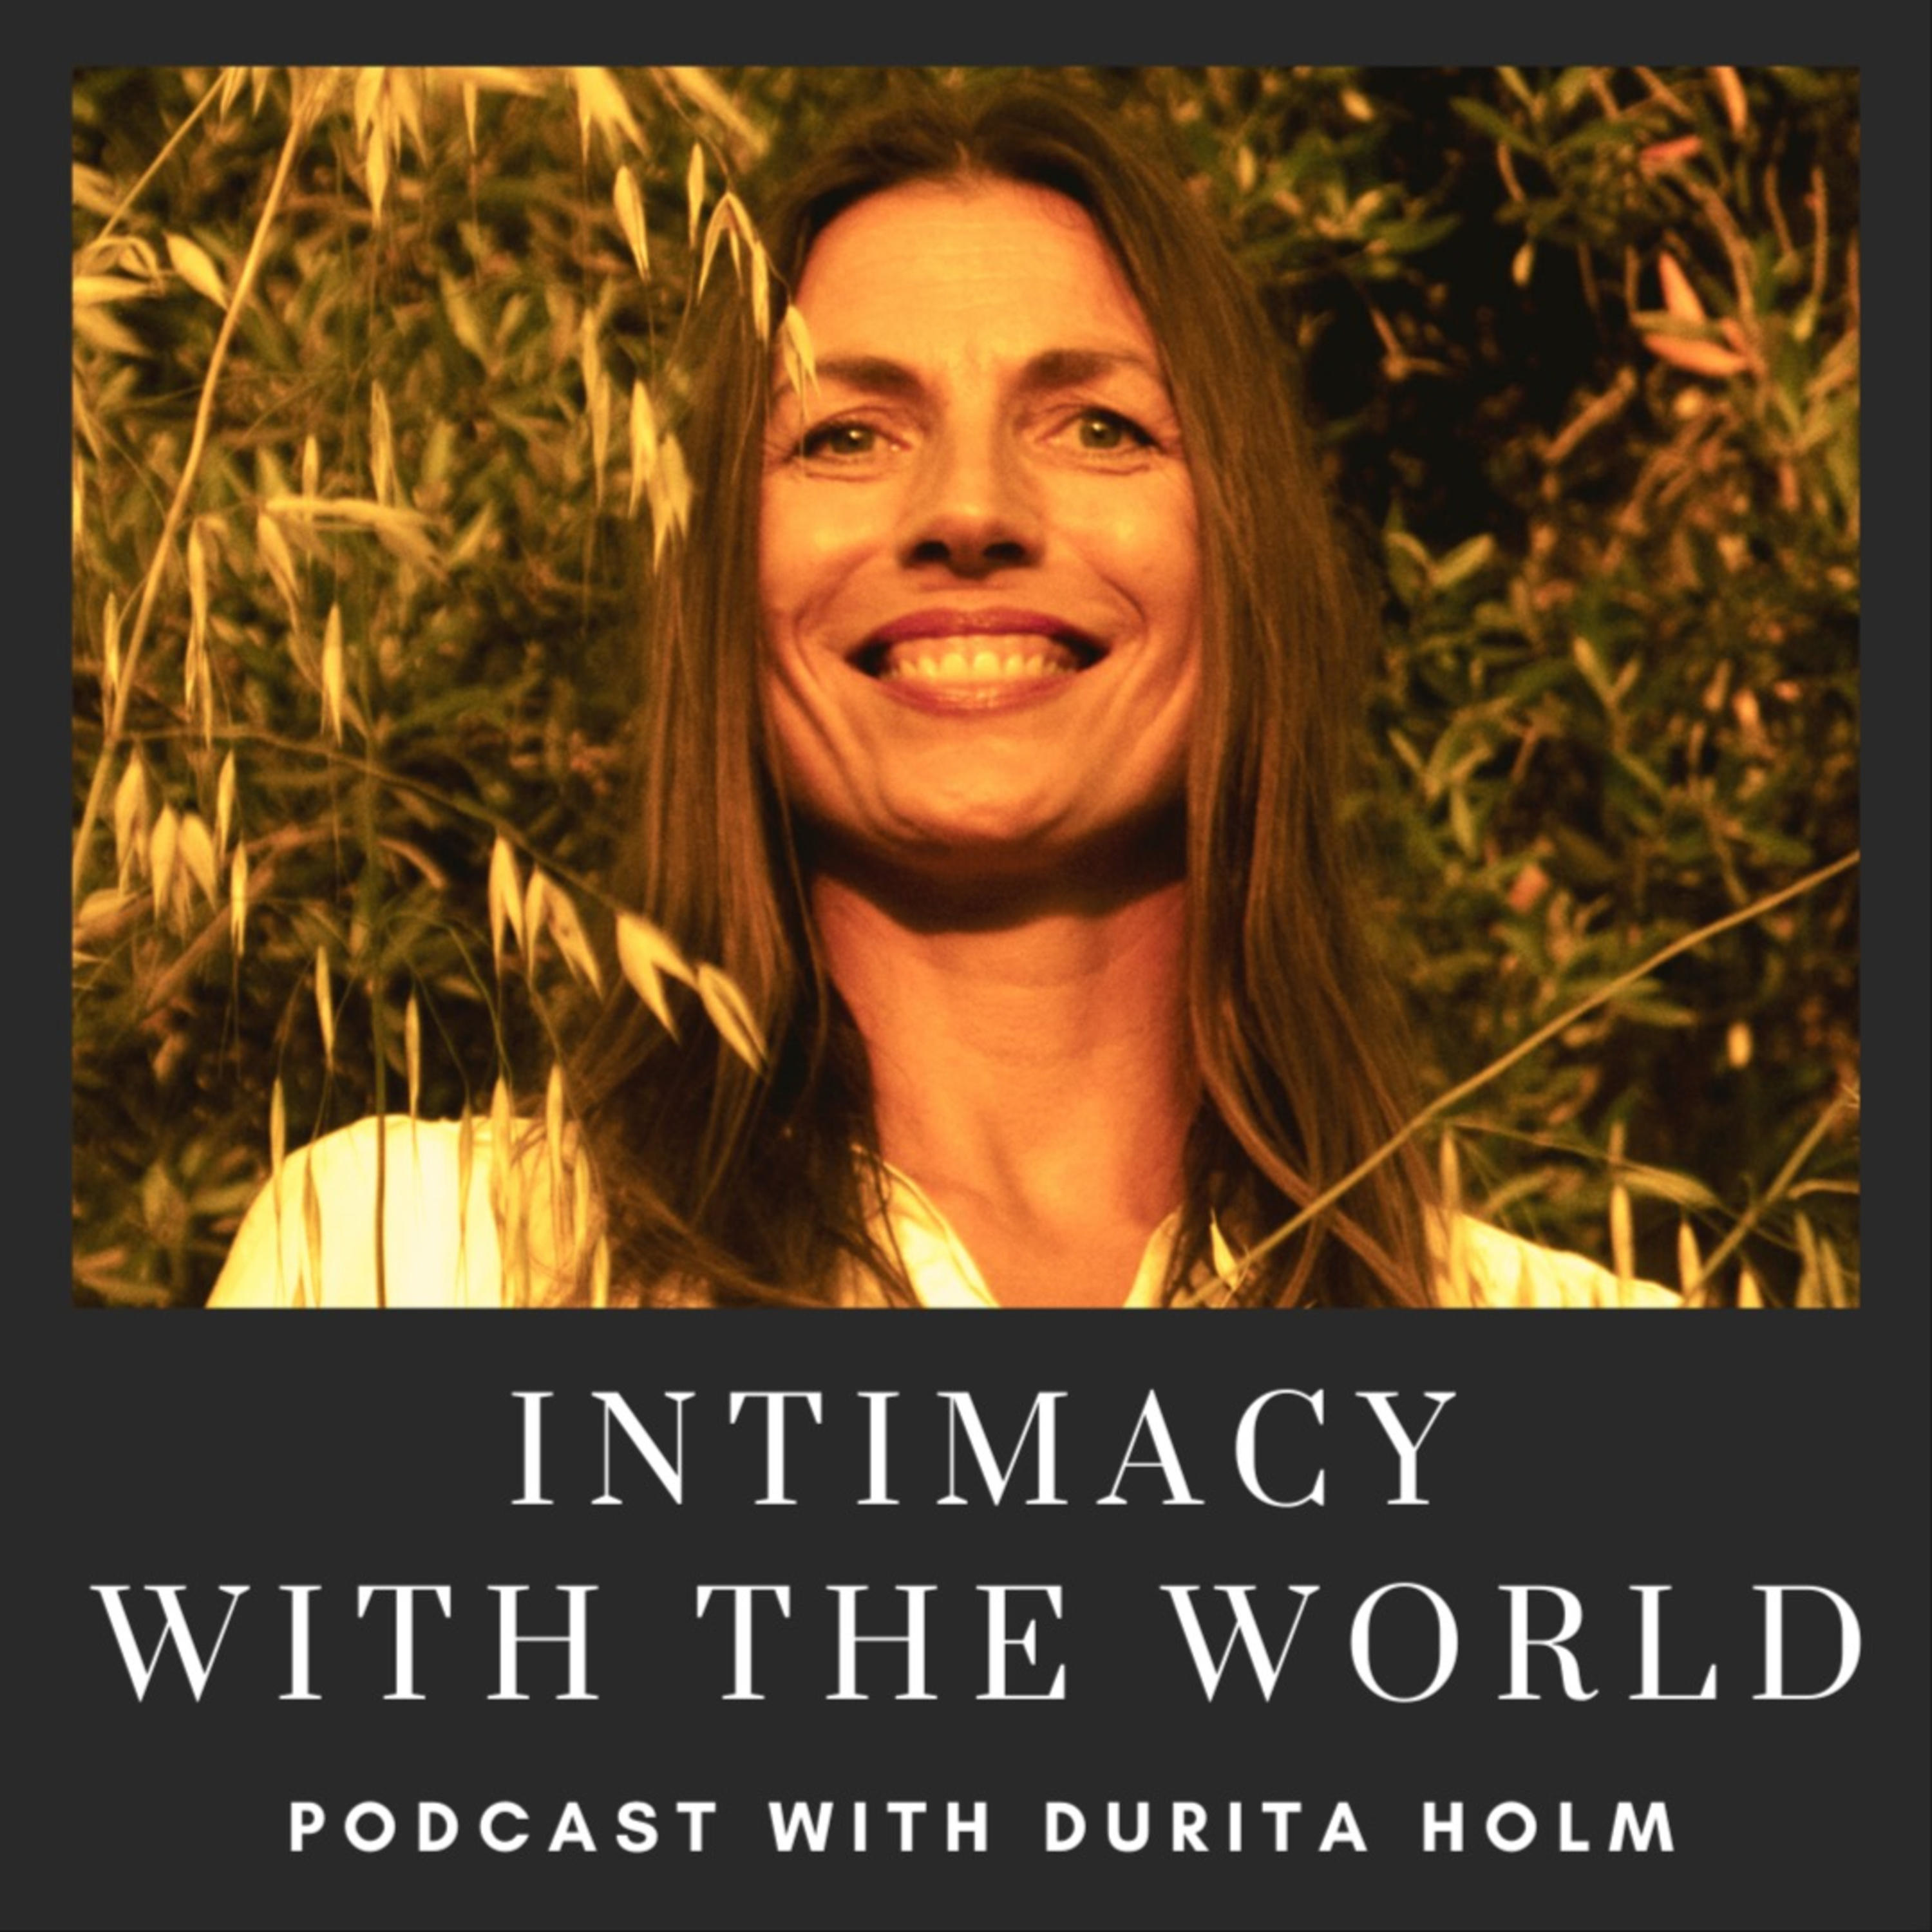 The Hero's journey. Exploring inner and outer courage and resilience with Durita Holm